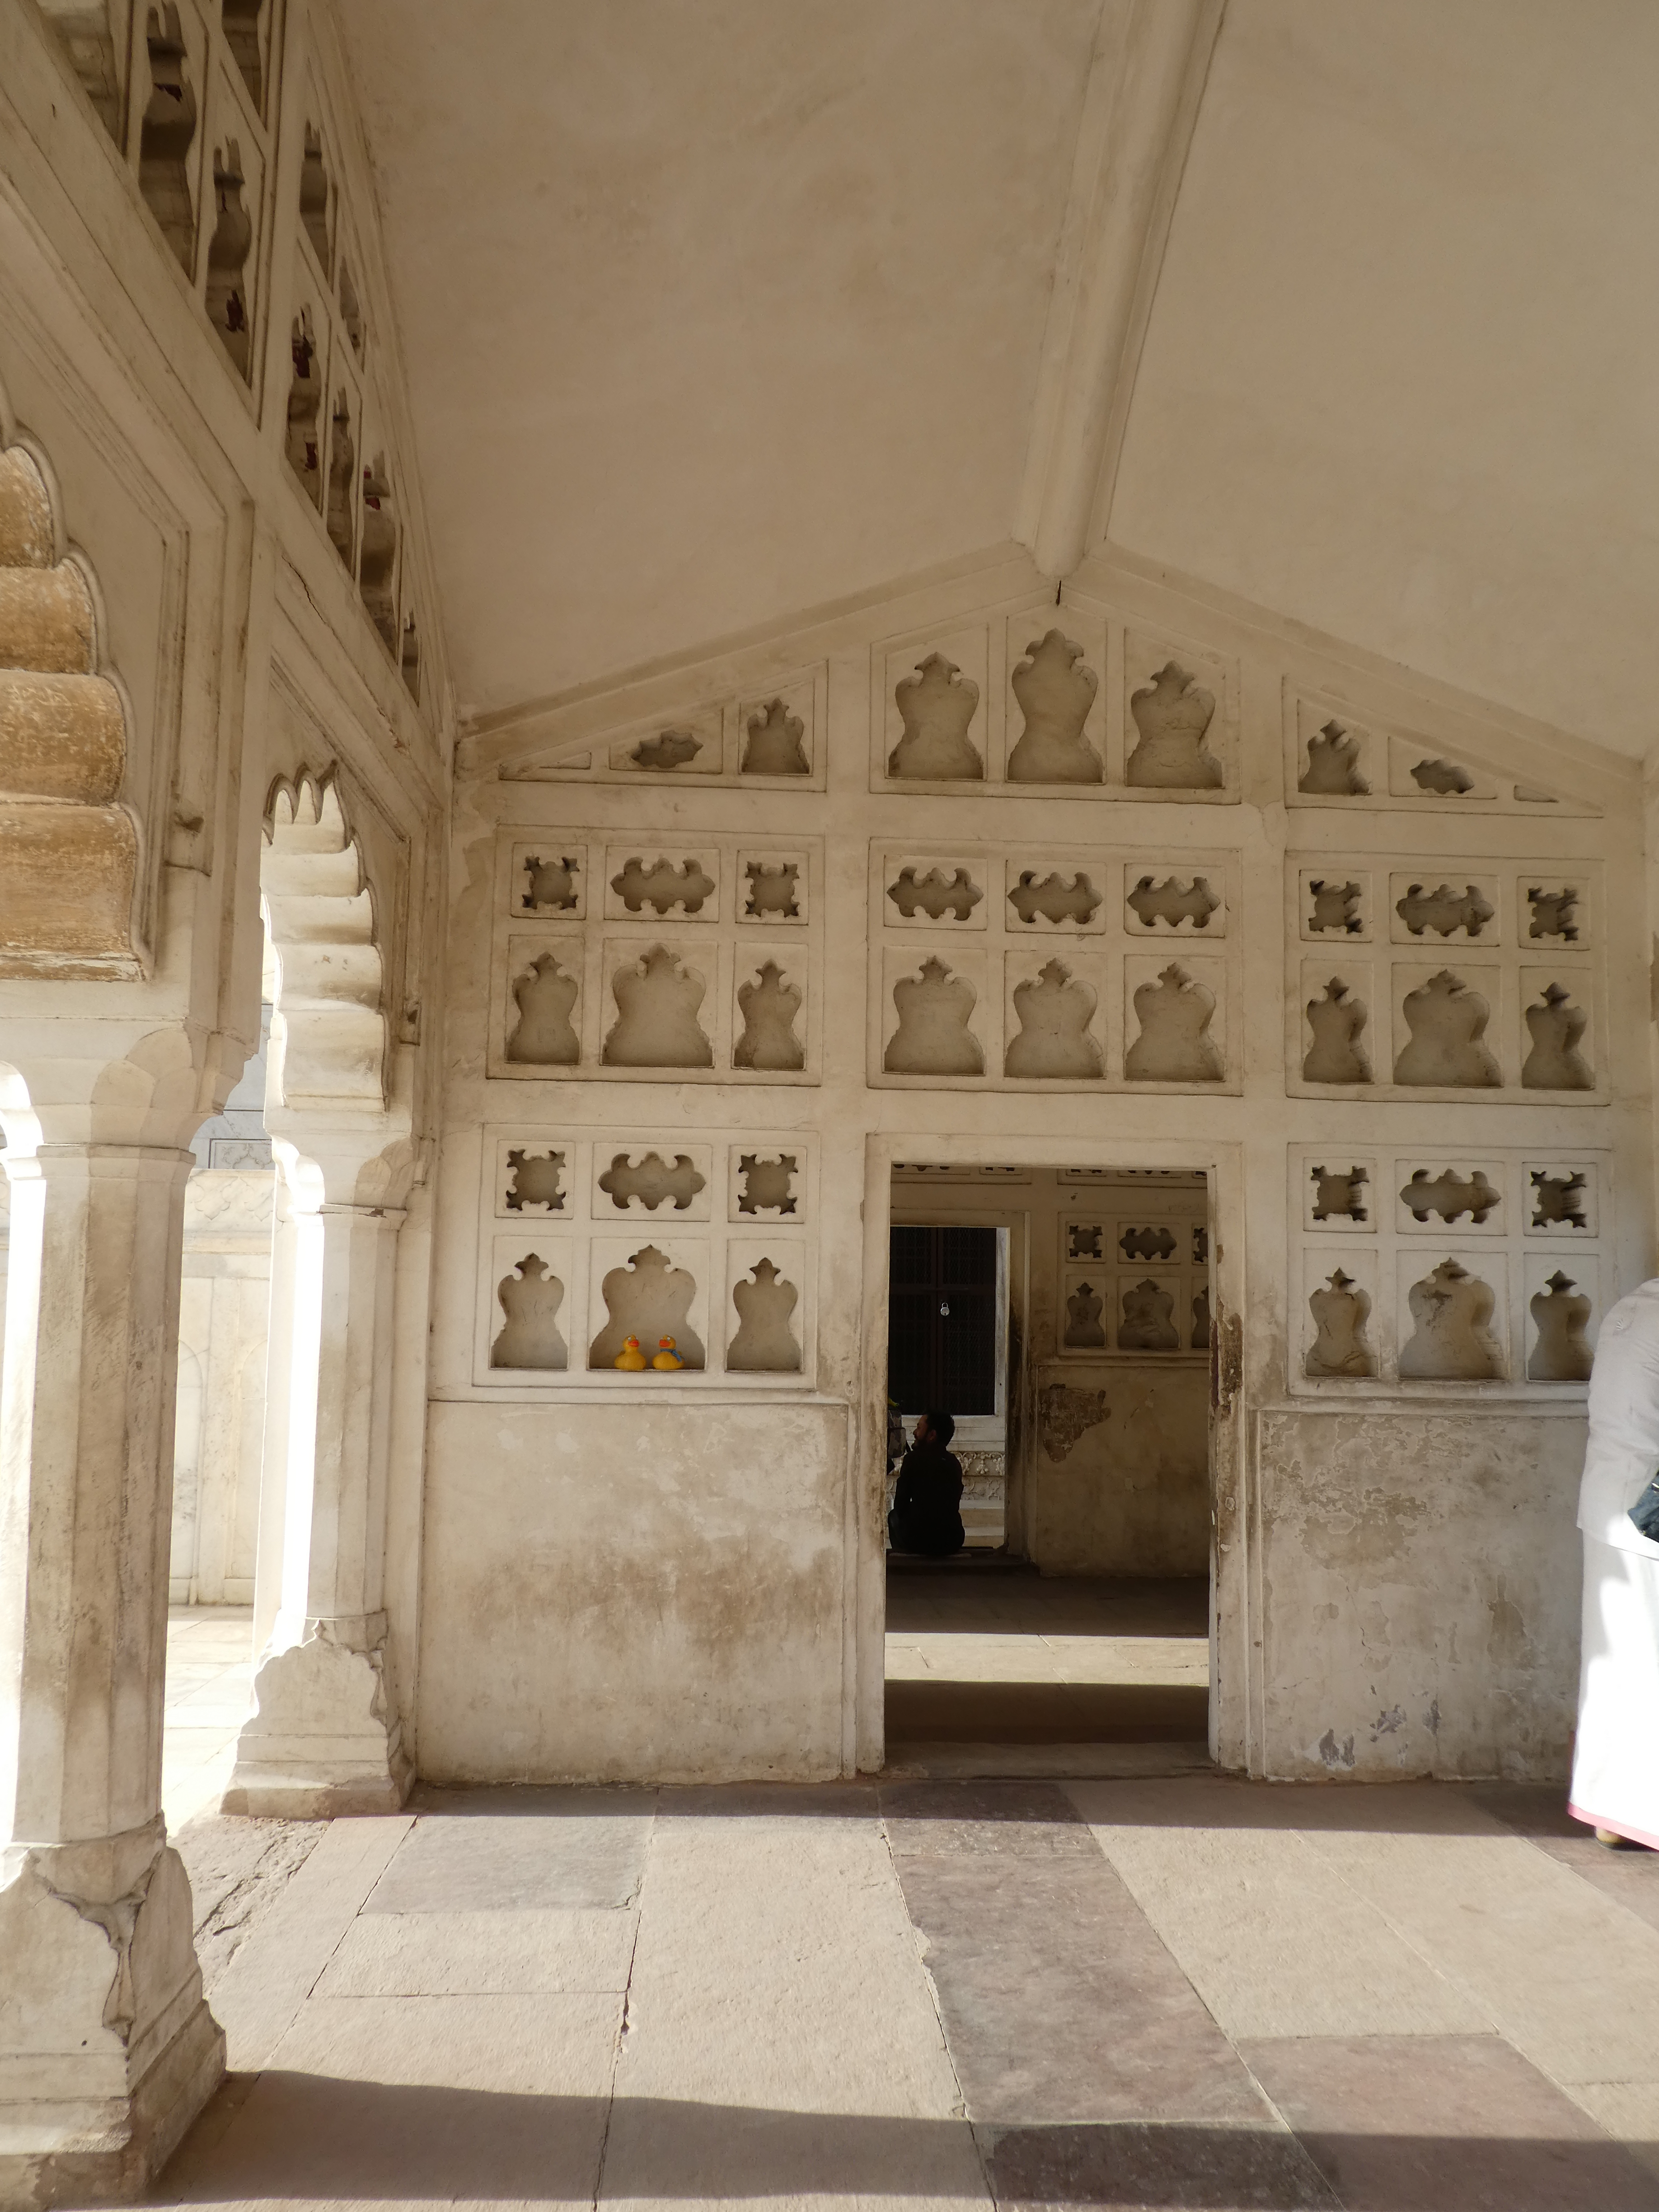 Shah Jahan Under House Arrest In Agra Fort India